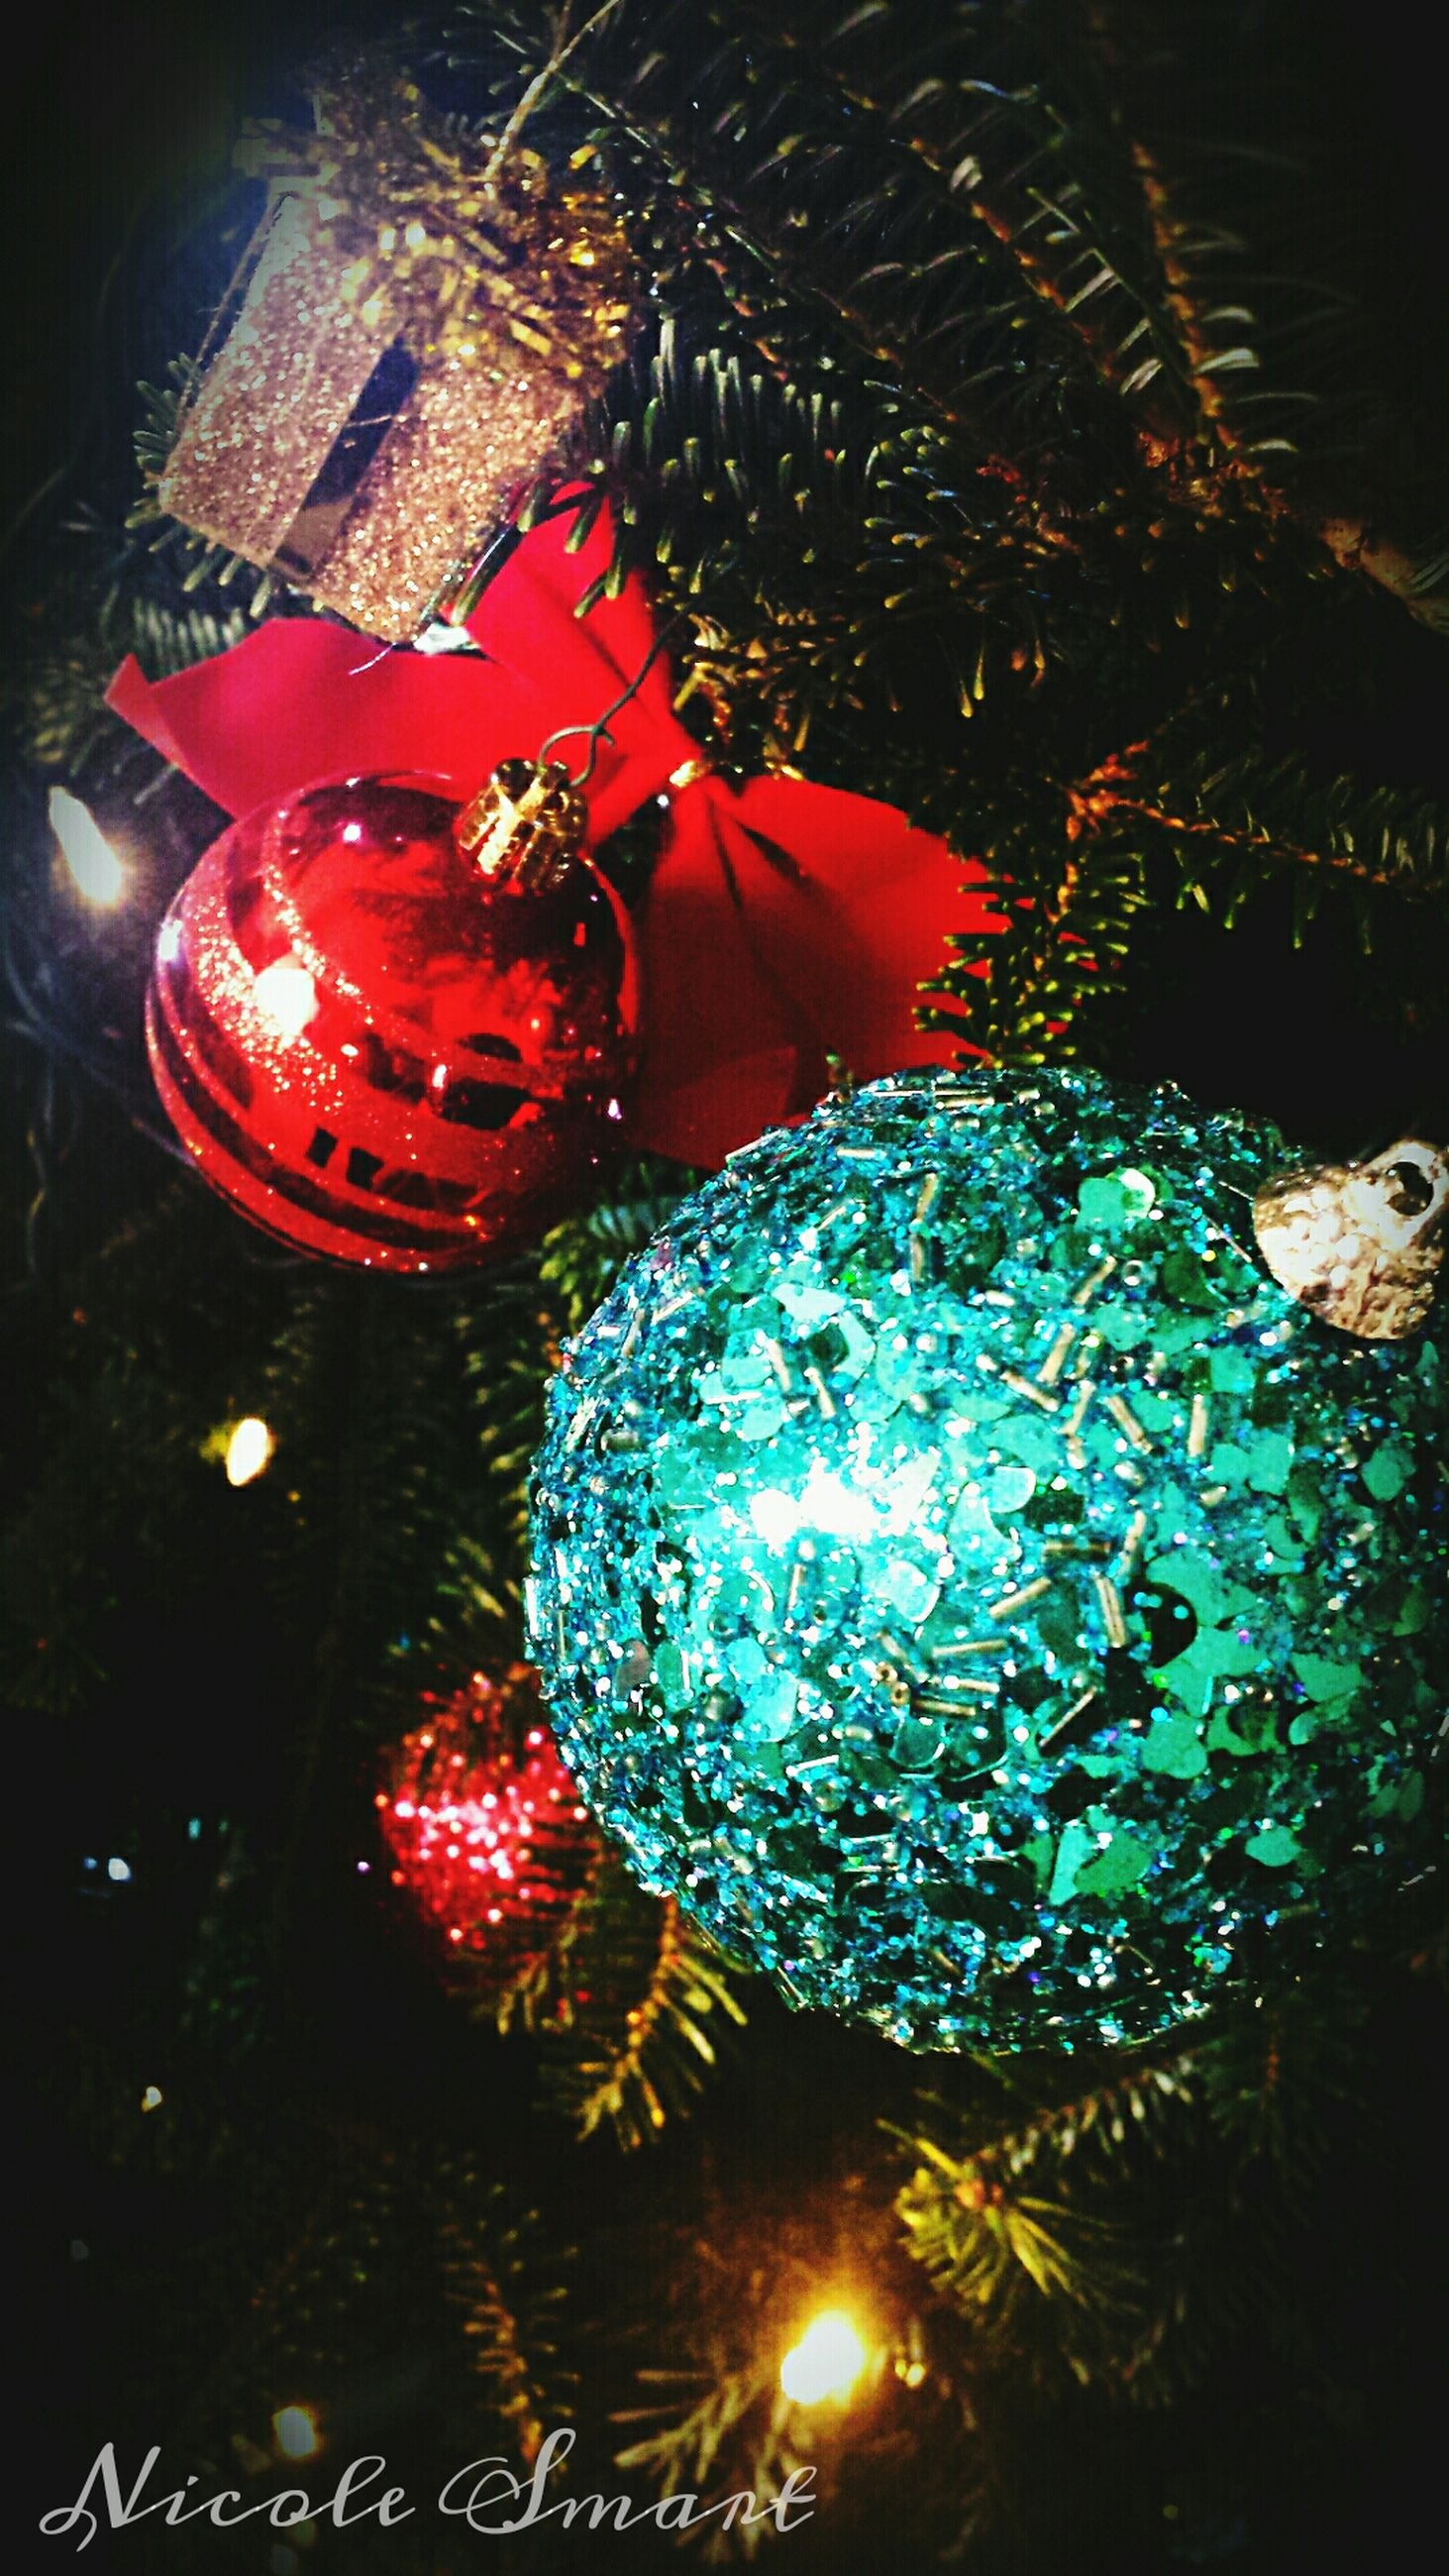 illuminated, night, celebration, red, christmas, indoors, christmas decoration, decoration, tradition, glowing, lighting equipment, christmas tree, multi colored, christmas lights, christmas ornament, celebration event, high angle view, close-up, cultures, decor